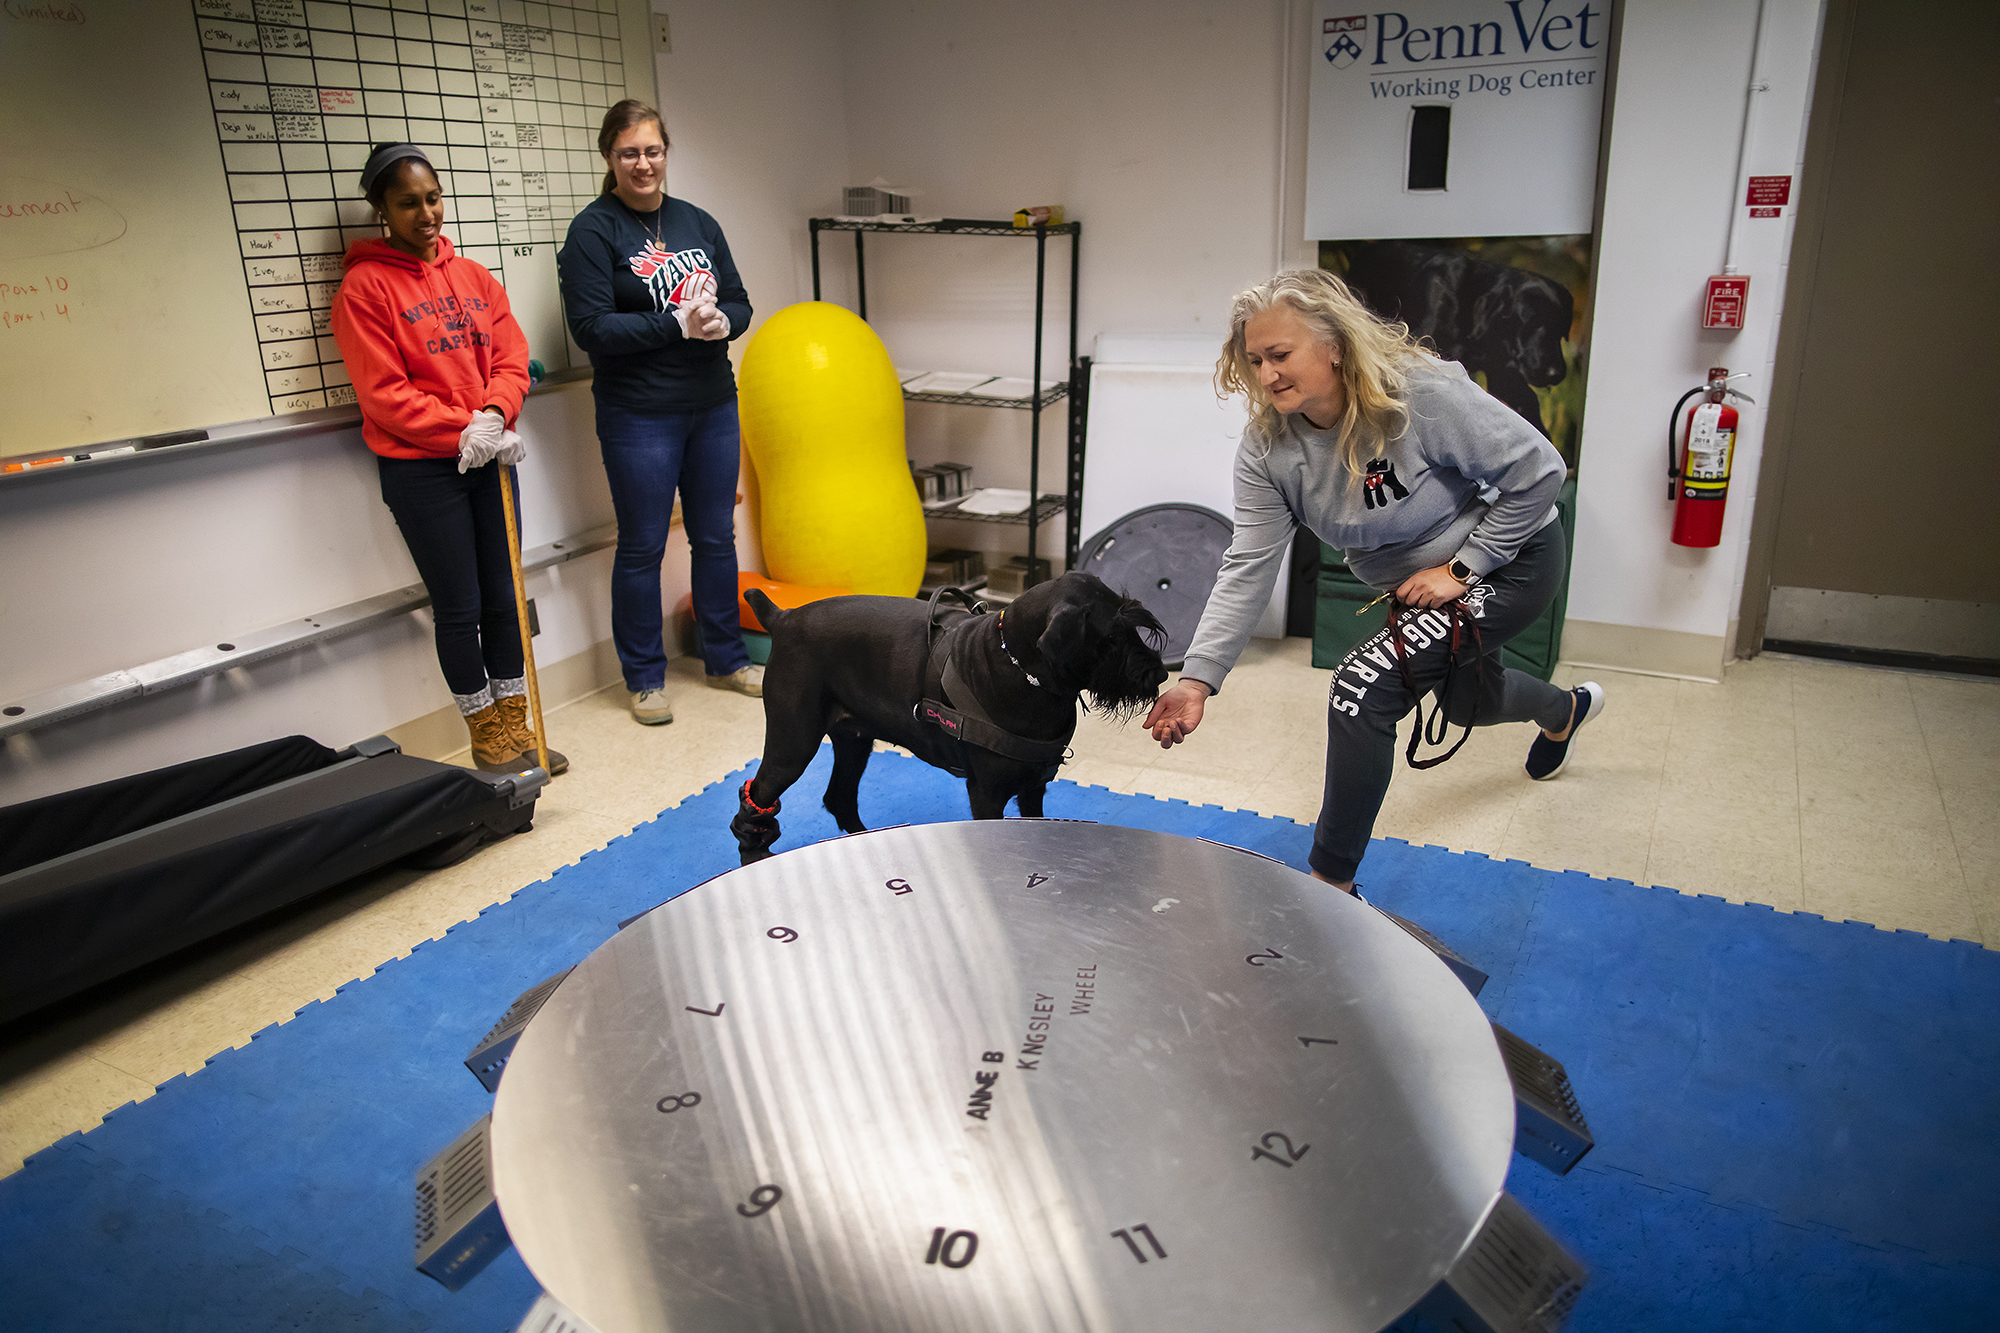 Challah, a black giant schnauzer, interacts with her owner as two others look on. They are in front of a large wheel with 12 numbered slots.